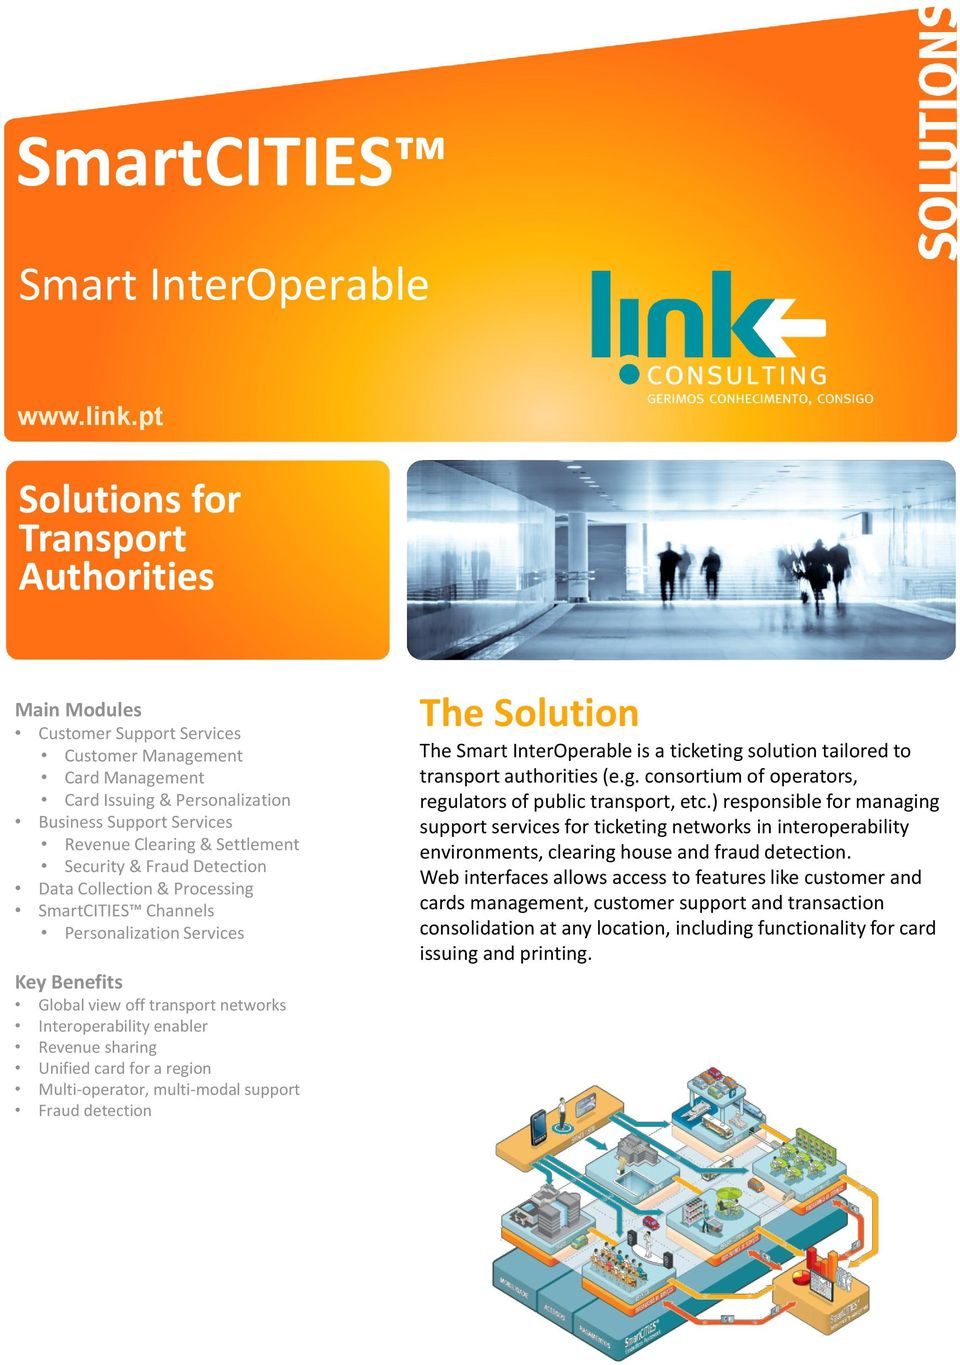 enabler Revenue sharing Unified card for a region Multi-operator, multi-modal support Fraud detection The Solution The Smart InterOperable is a ticketing solution tailored to transport authorities (e.